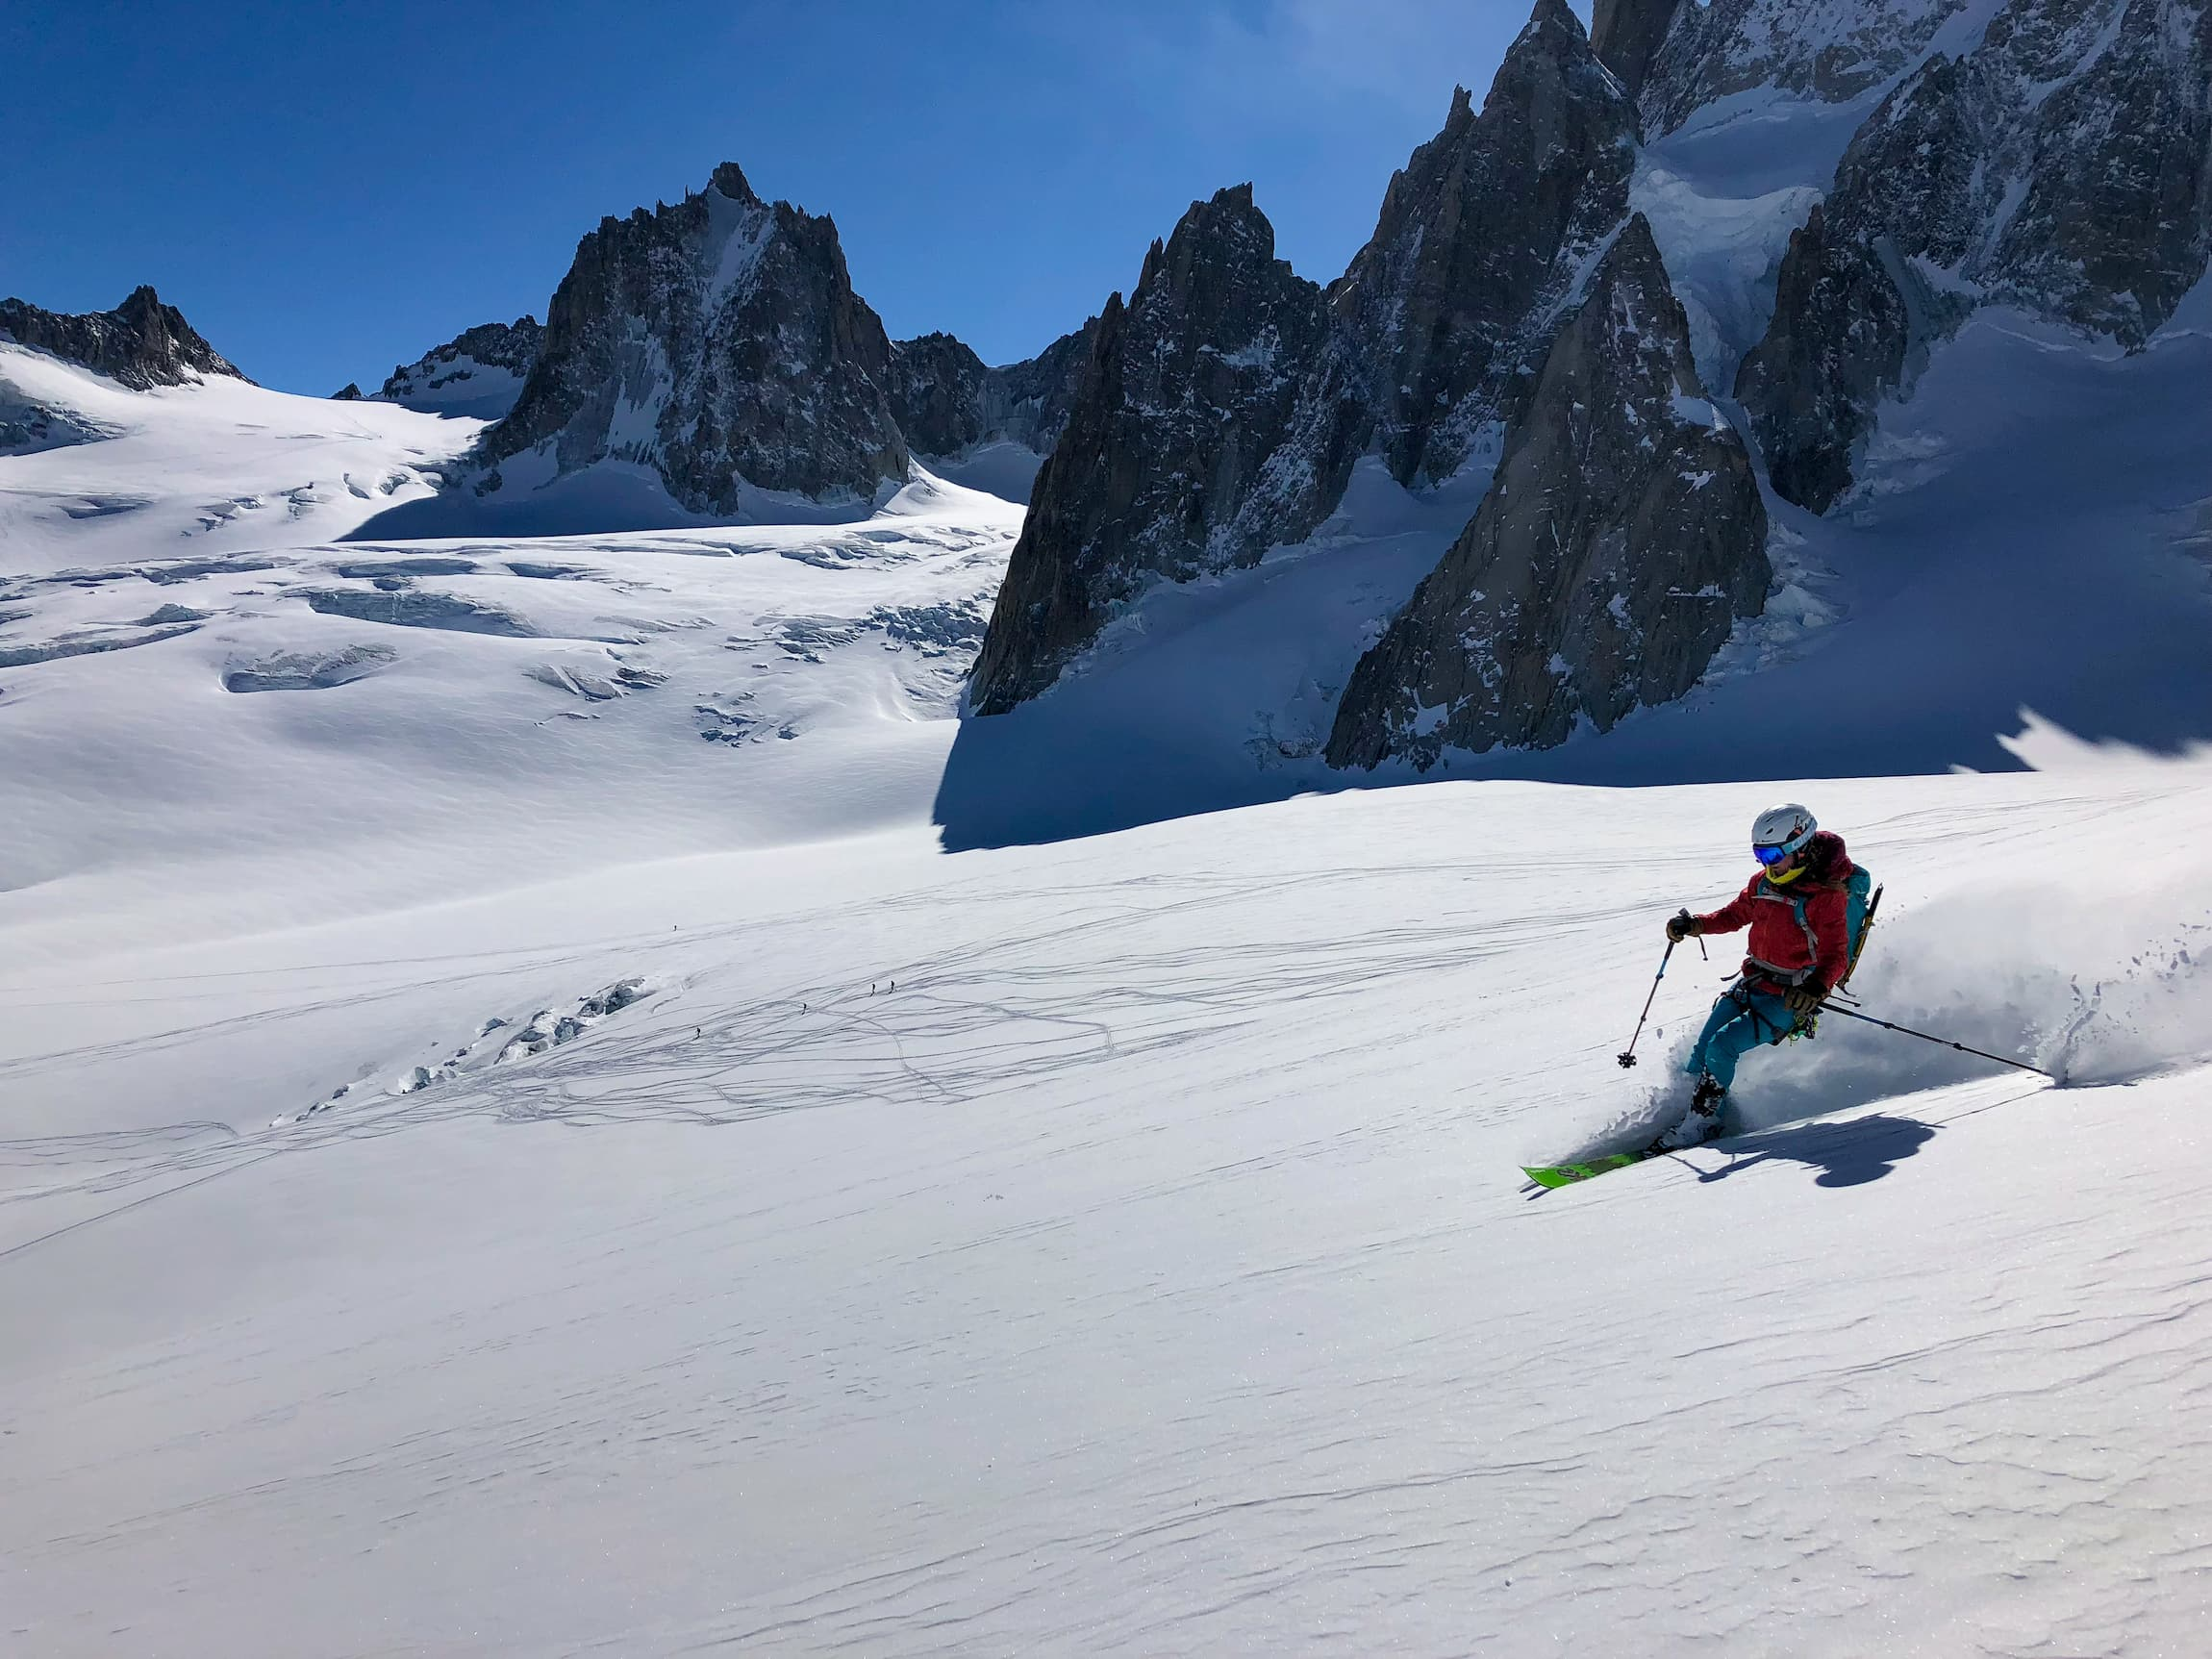 Skiing beautiful powder on the famous Vallee Blanche - glacier skiing among the incredible granite peaks of the Mont Blanc moutains with Icicle Mountain Adventures